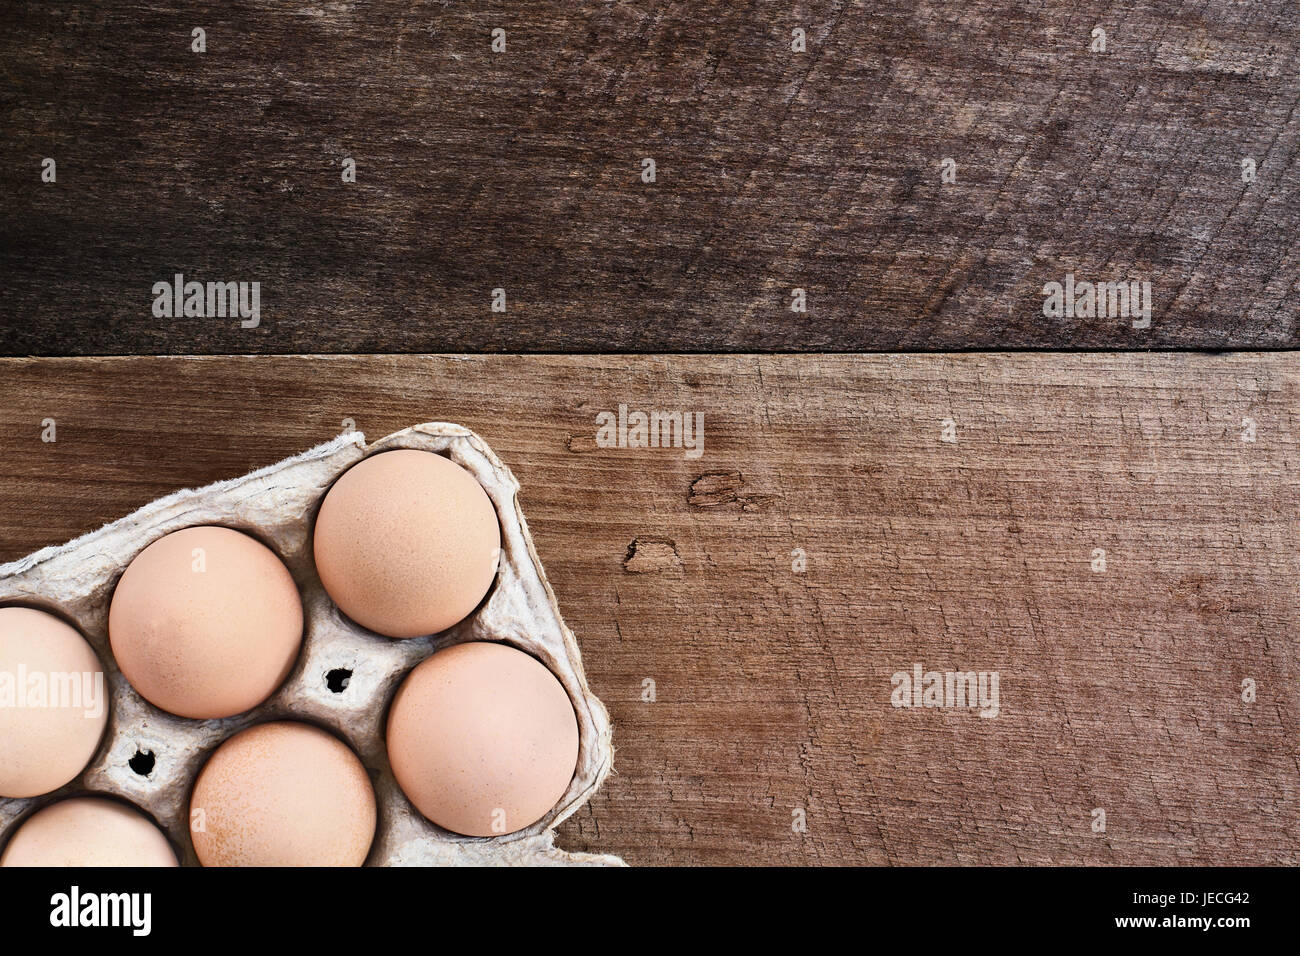 Farm fresh organic brown chicken eggs from free range chickens with in a paper carton over a rustic wooden background. - Stock Image